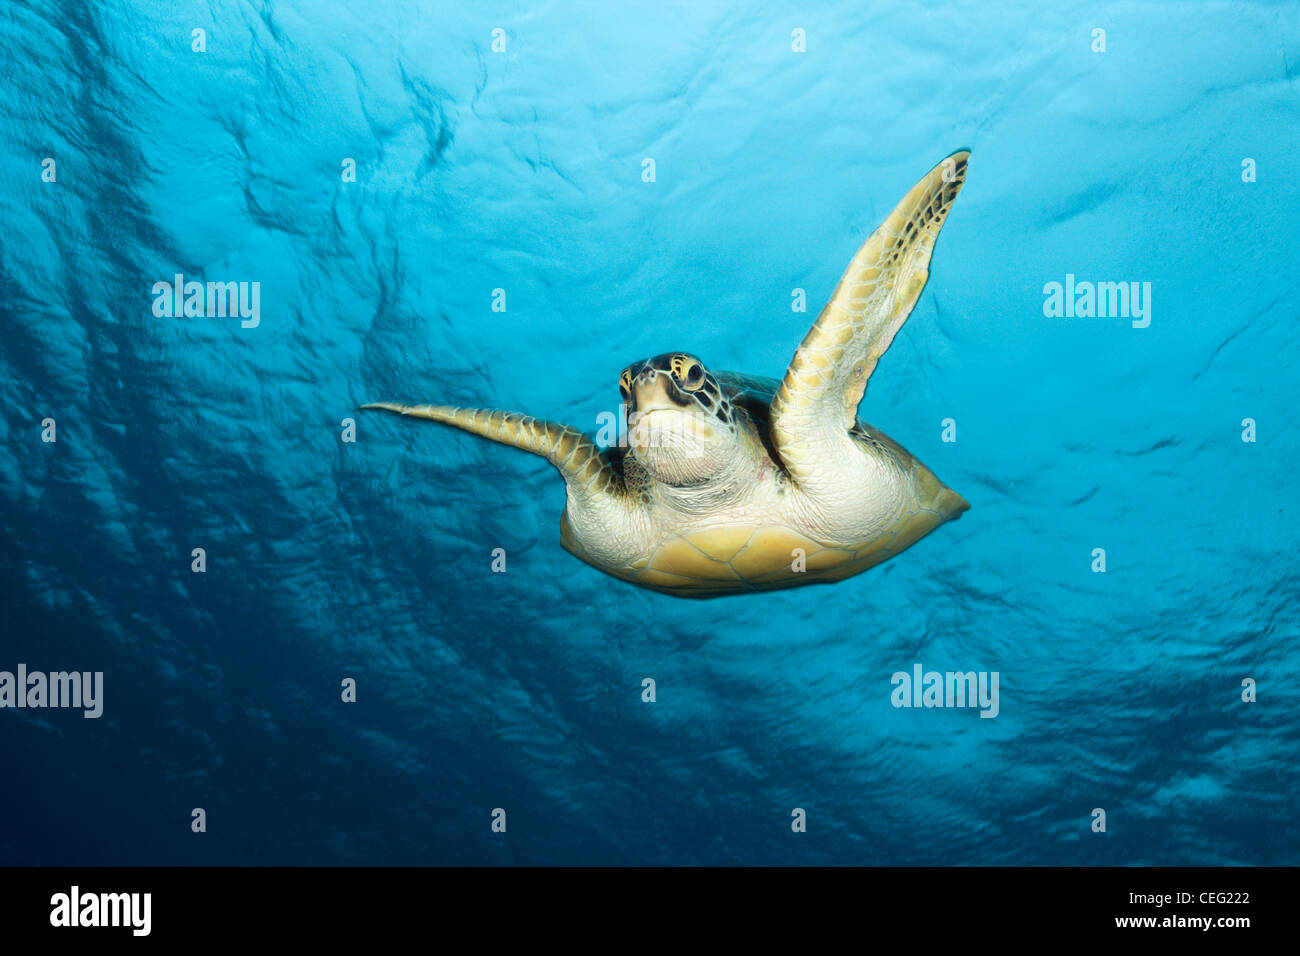 Green Sea Turtle, Chelonia mydas, Baa Atoll, Indian Ocean, Maldives Stock Photo